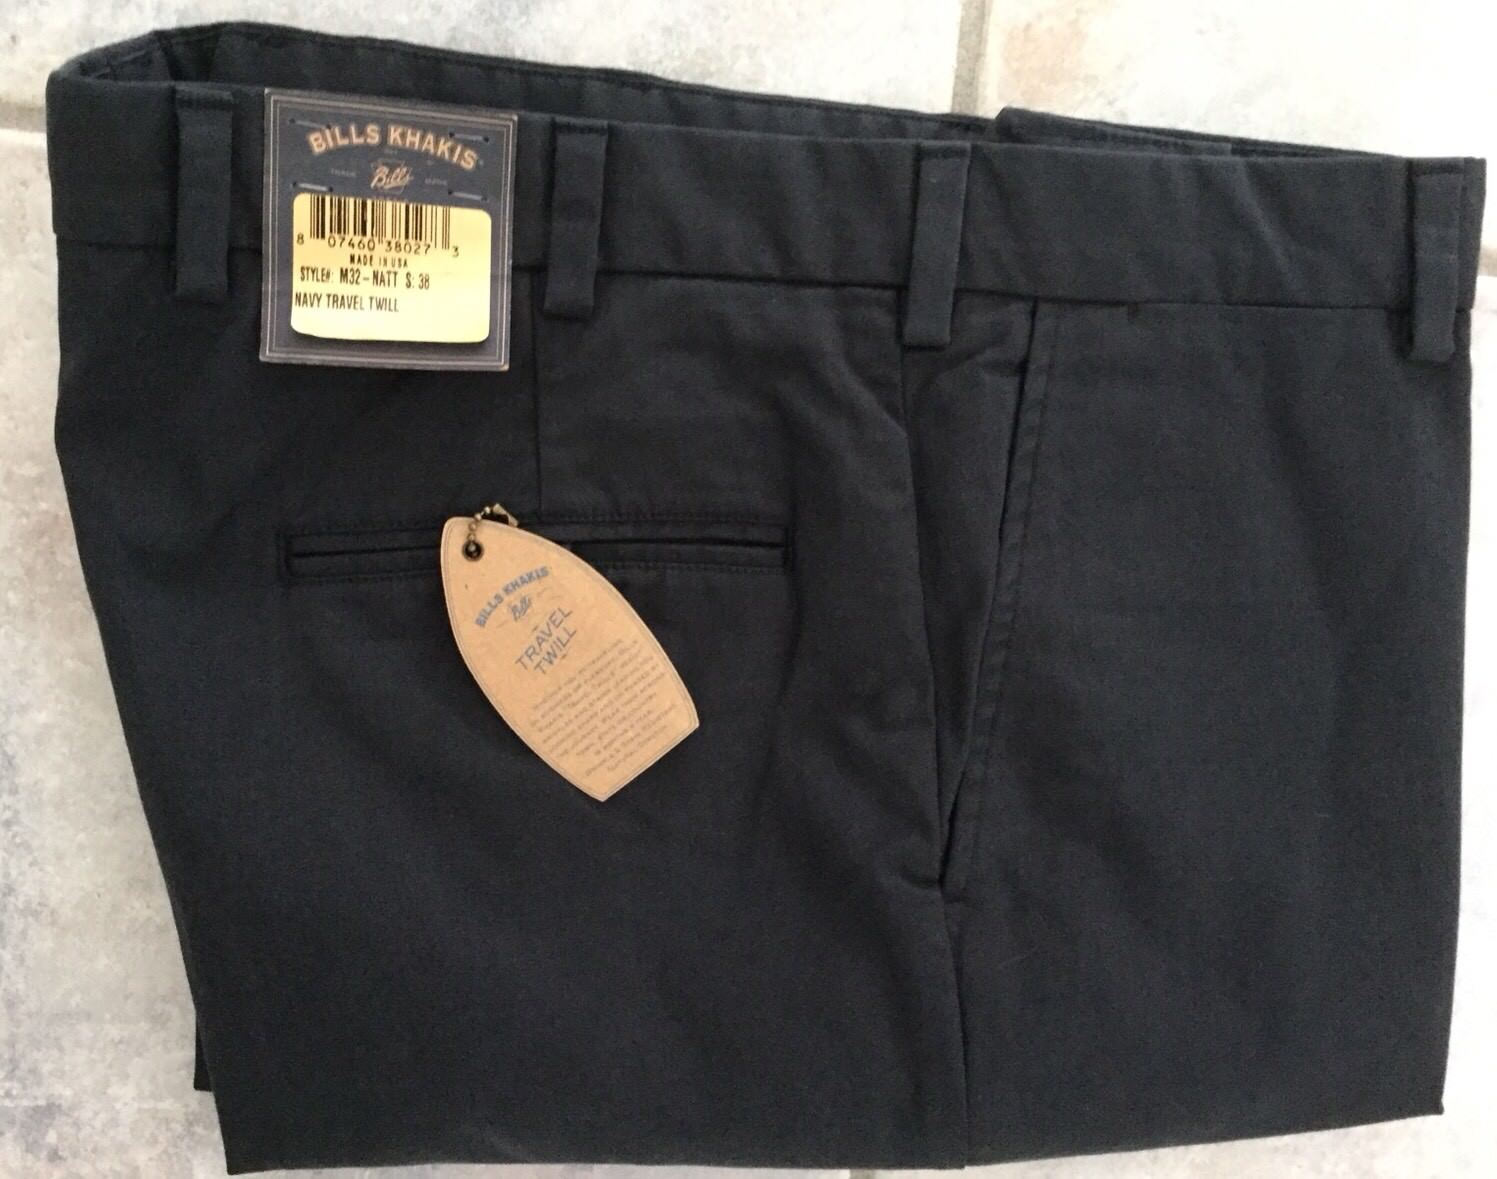 BRAND NEW-Bills khakis M32-NATT SZ 36X32 TRAVEL TWILL  NAVY